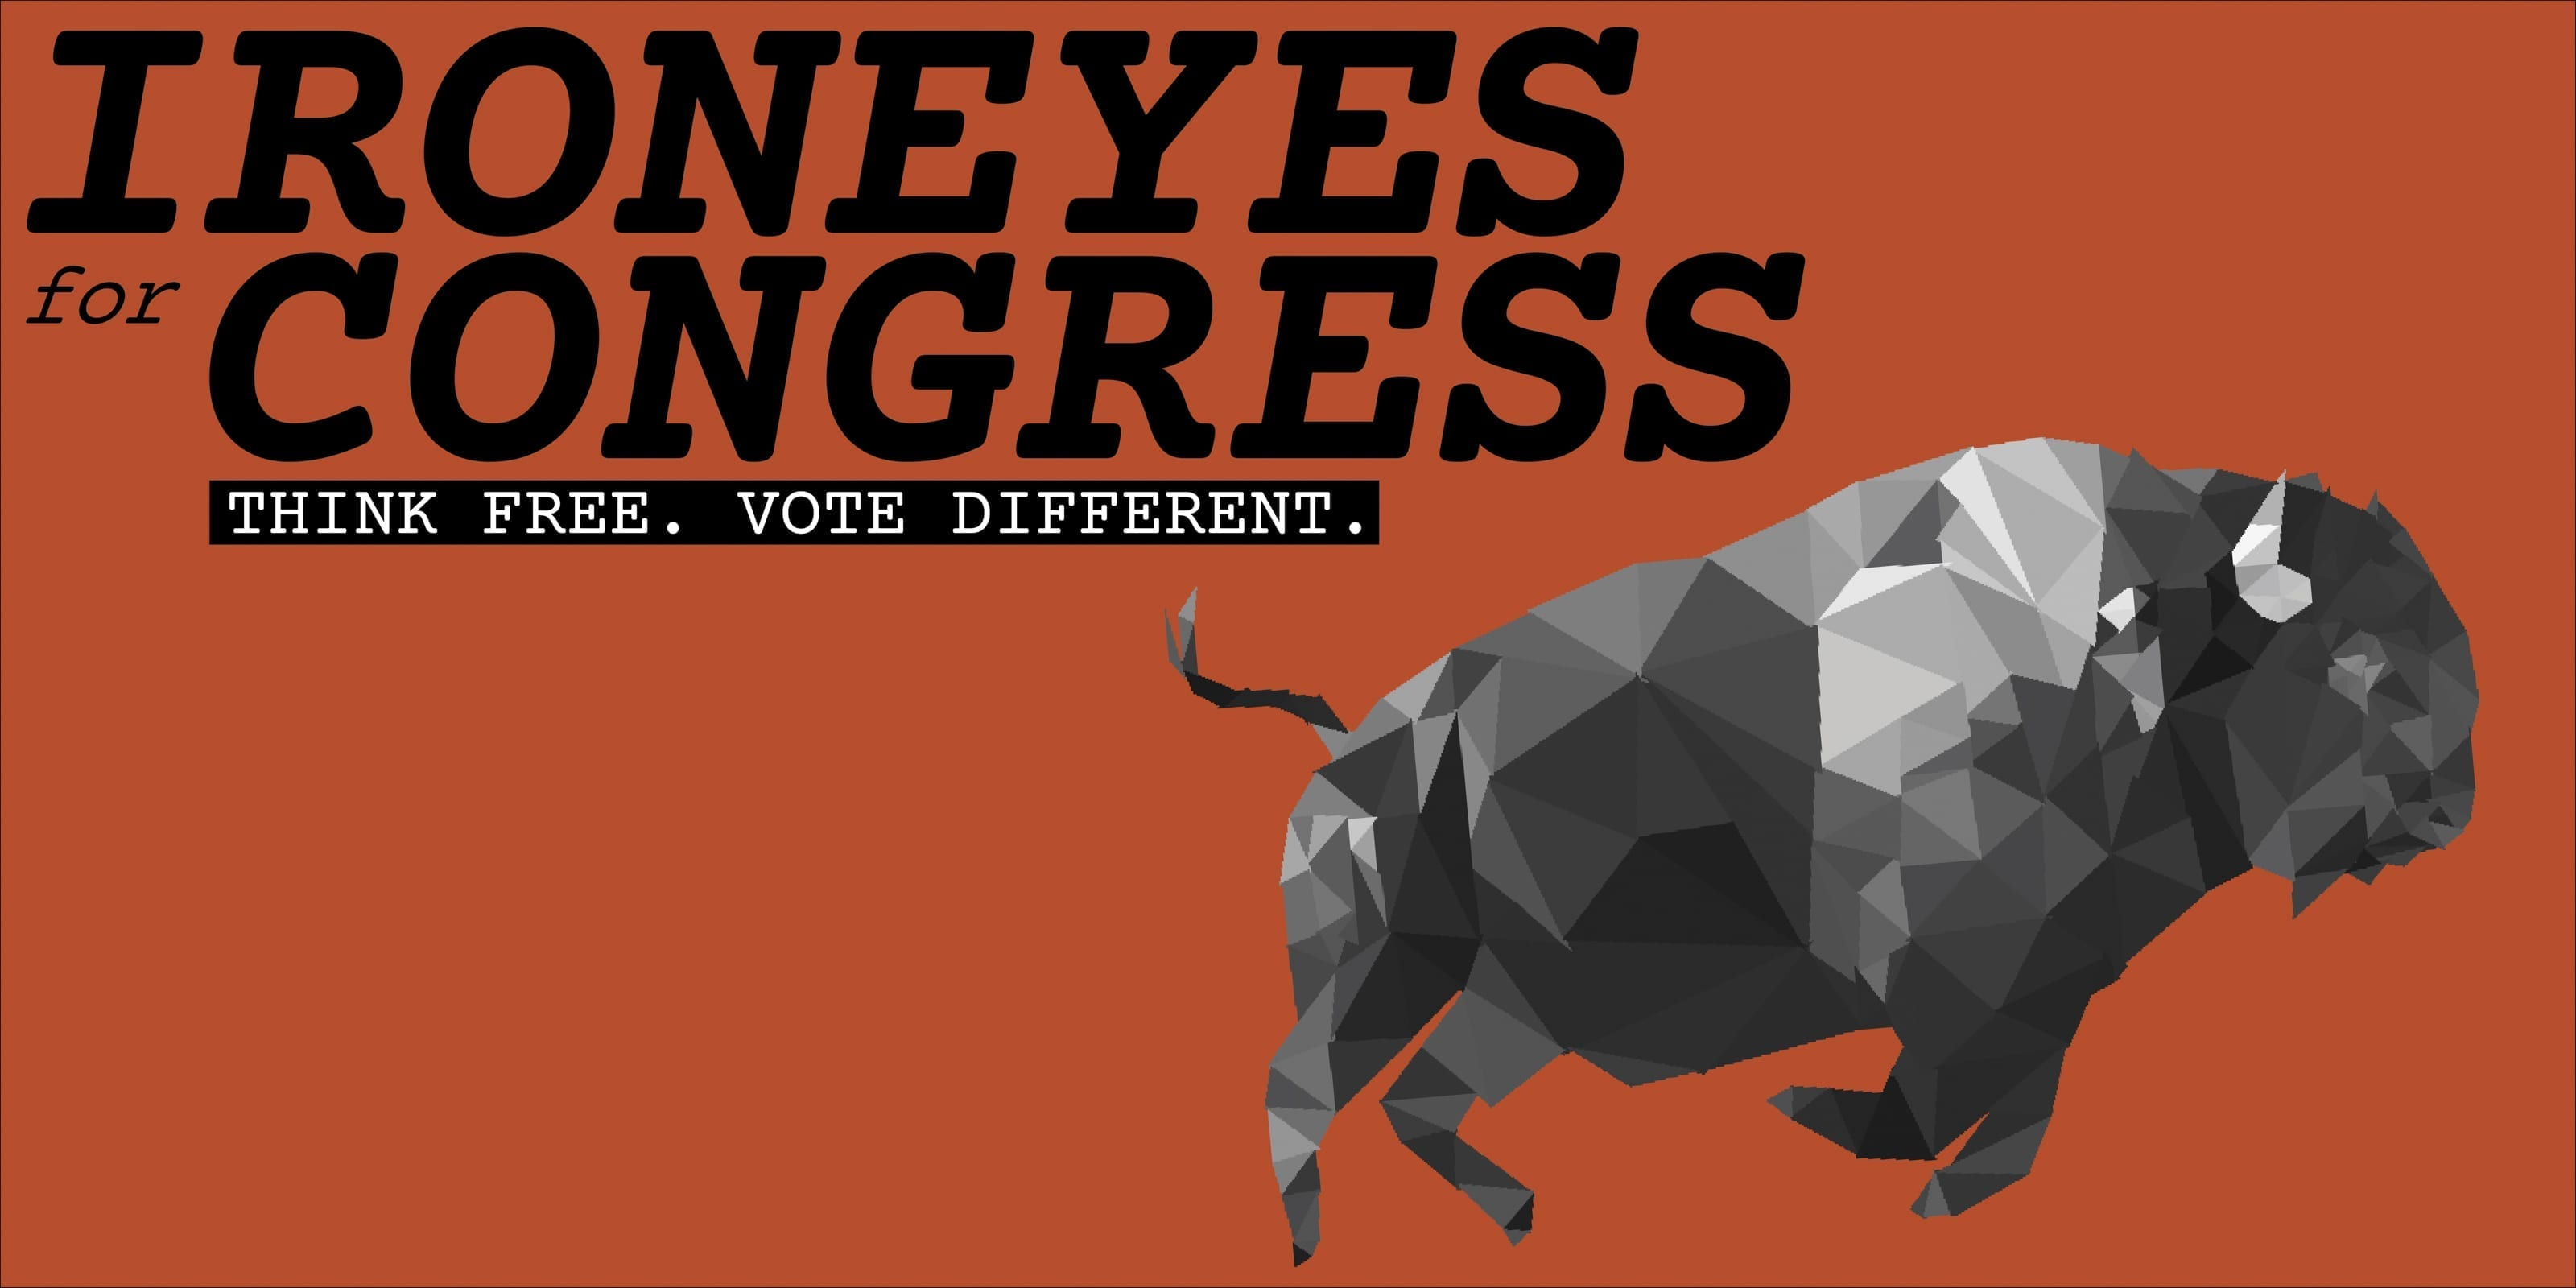 Chase Ironeyes for Congress Campaign Sign